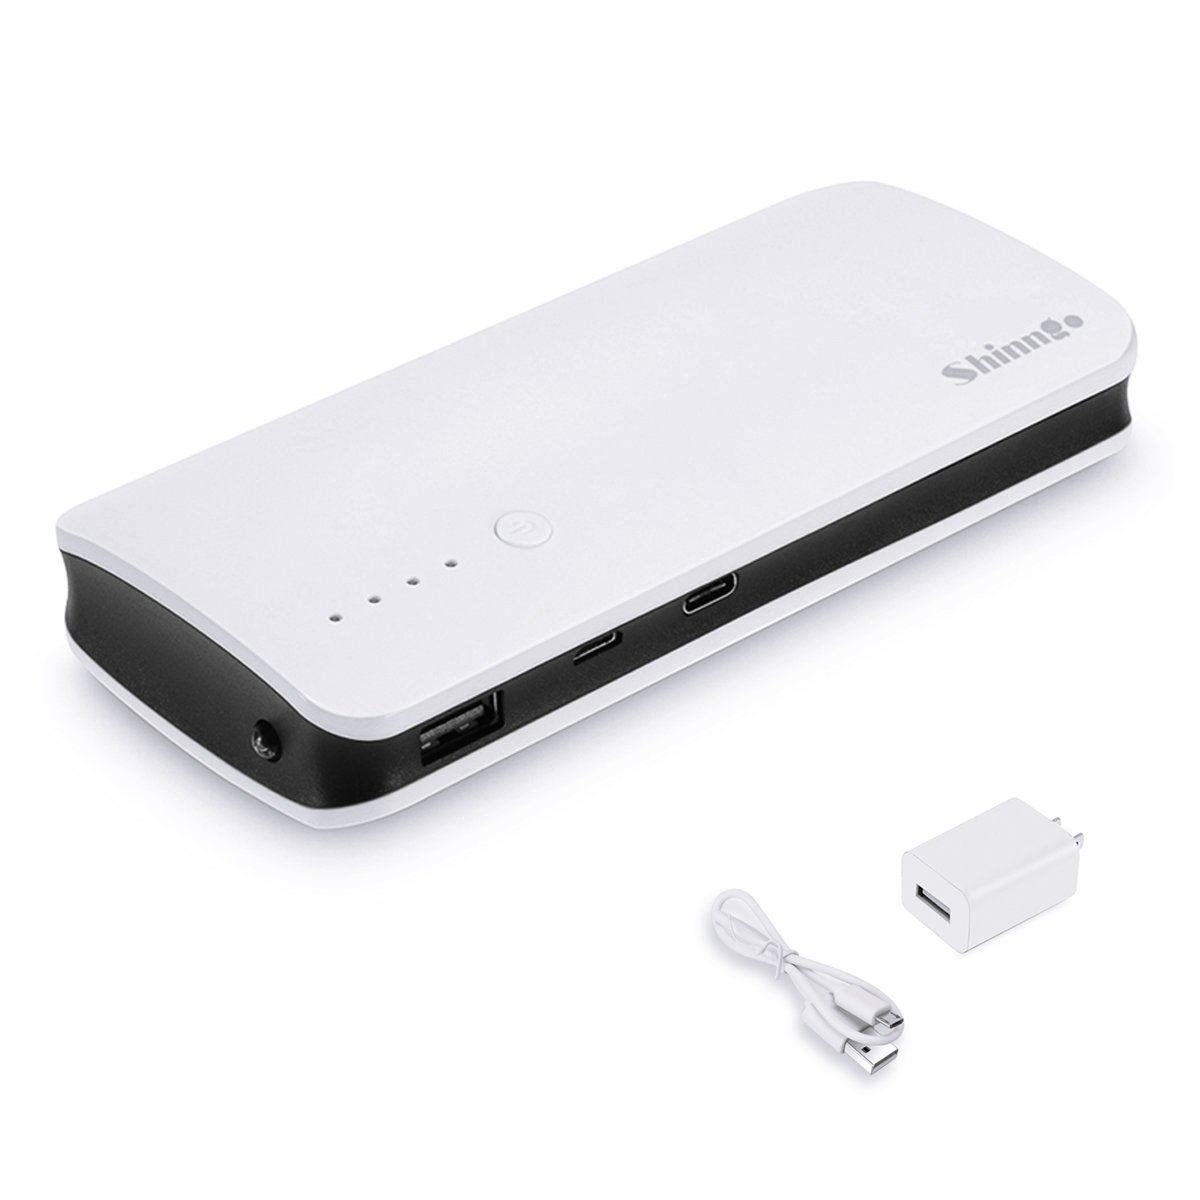 Shinngo Portable Charger 10000mAh 3.4A Output Ultra Compact High Capacity Power Bank Dual USB Ports High-Speed Charger Battery Pack with Flashlight (White)